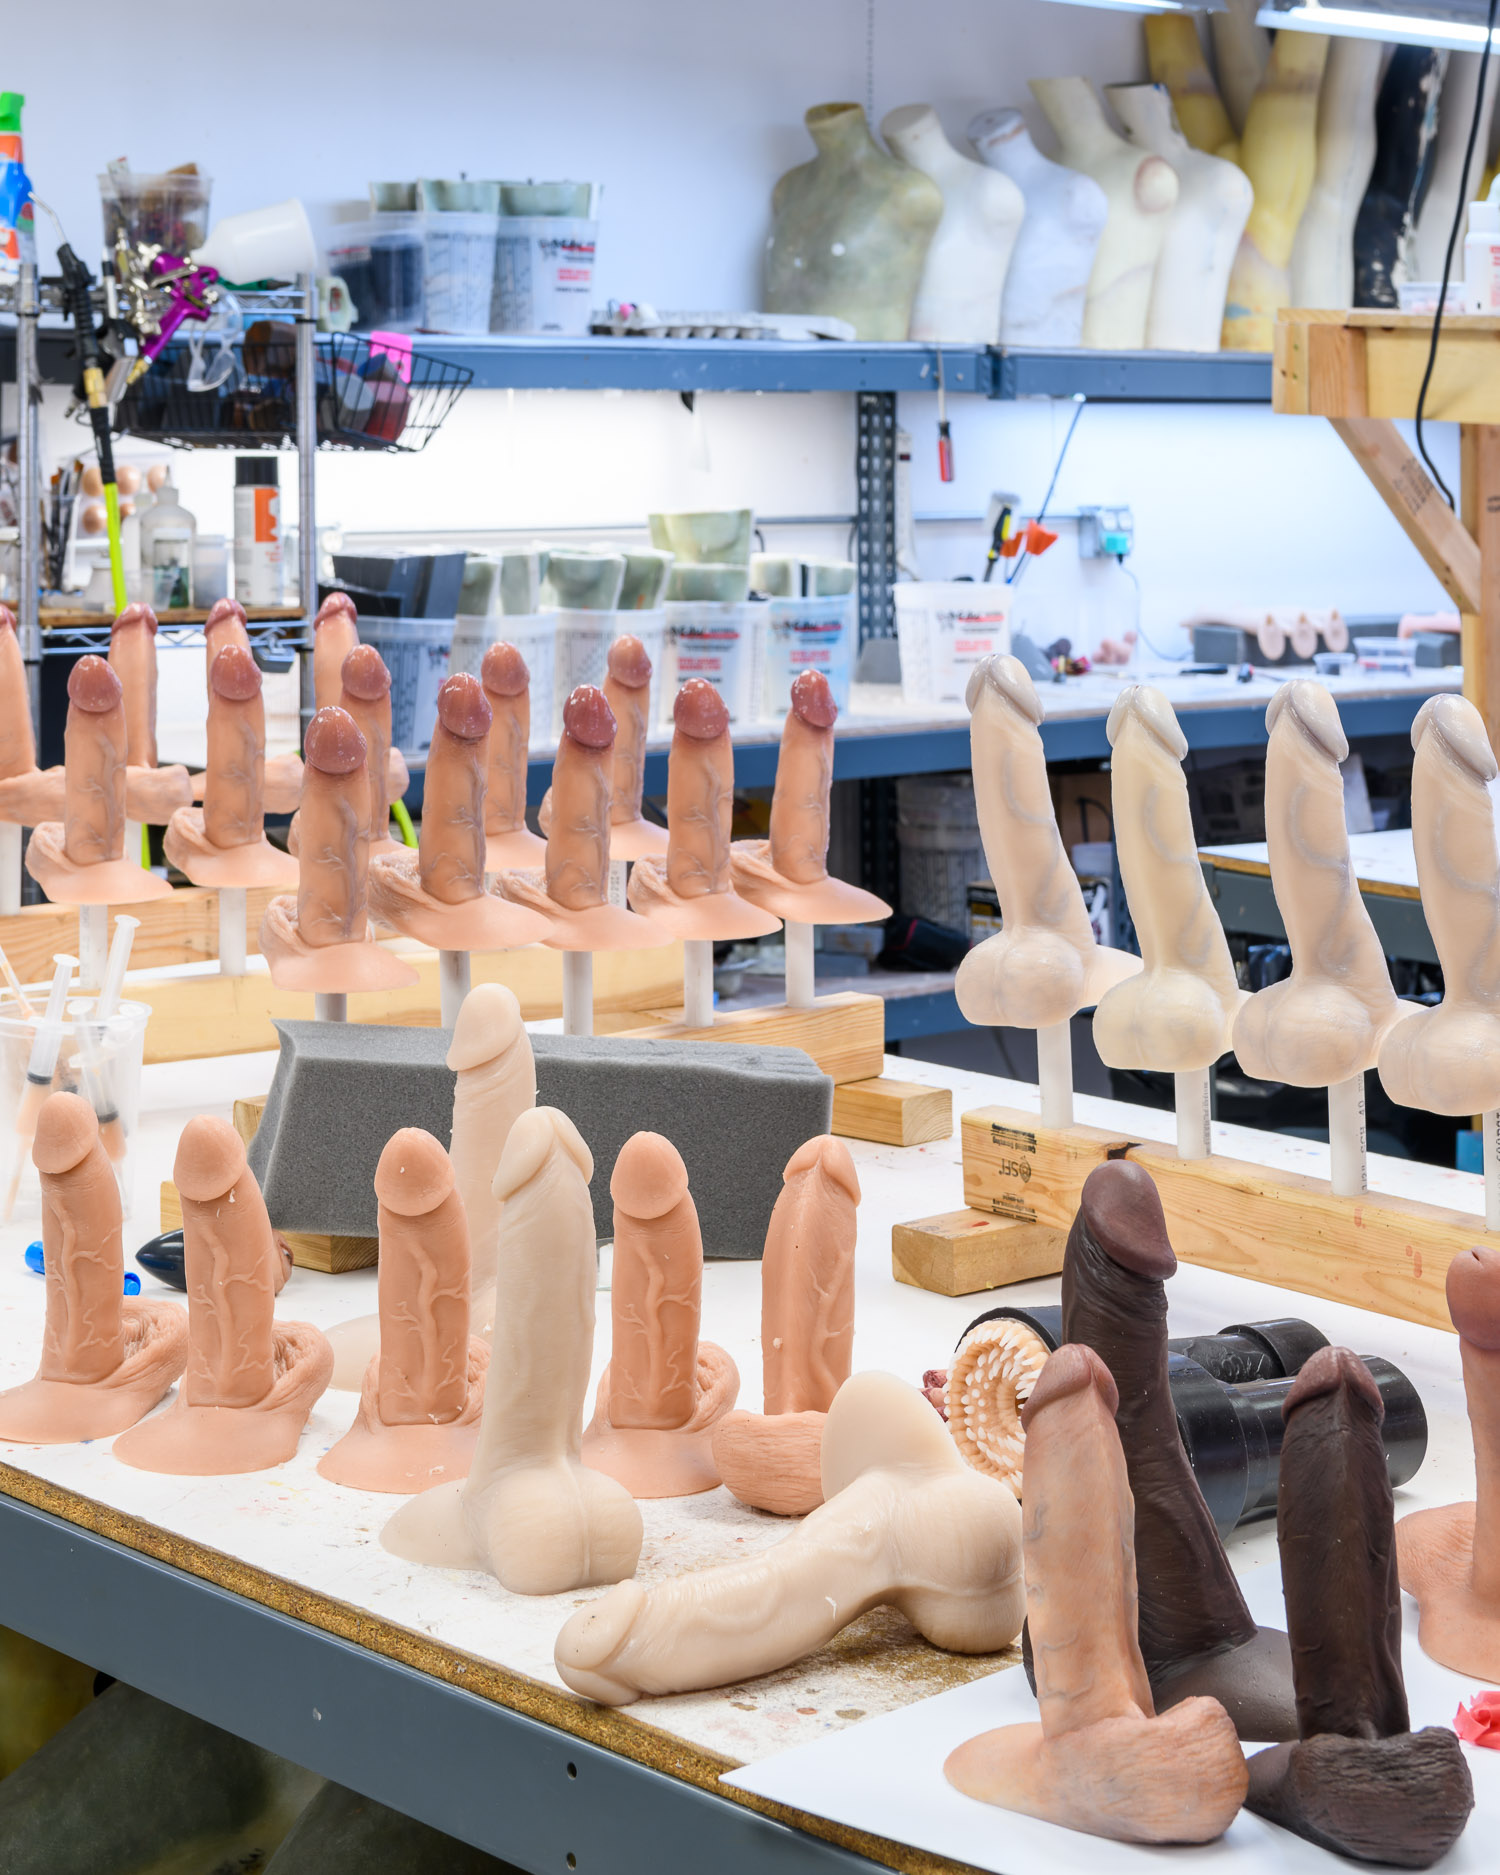 Ultra realistic penises being produced at the RealCock workshop